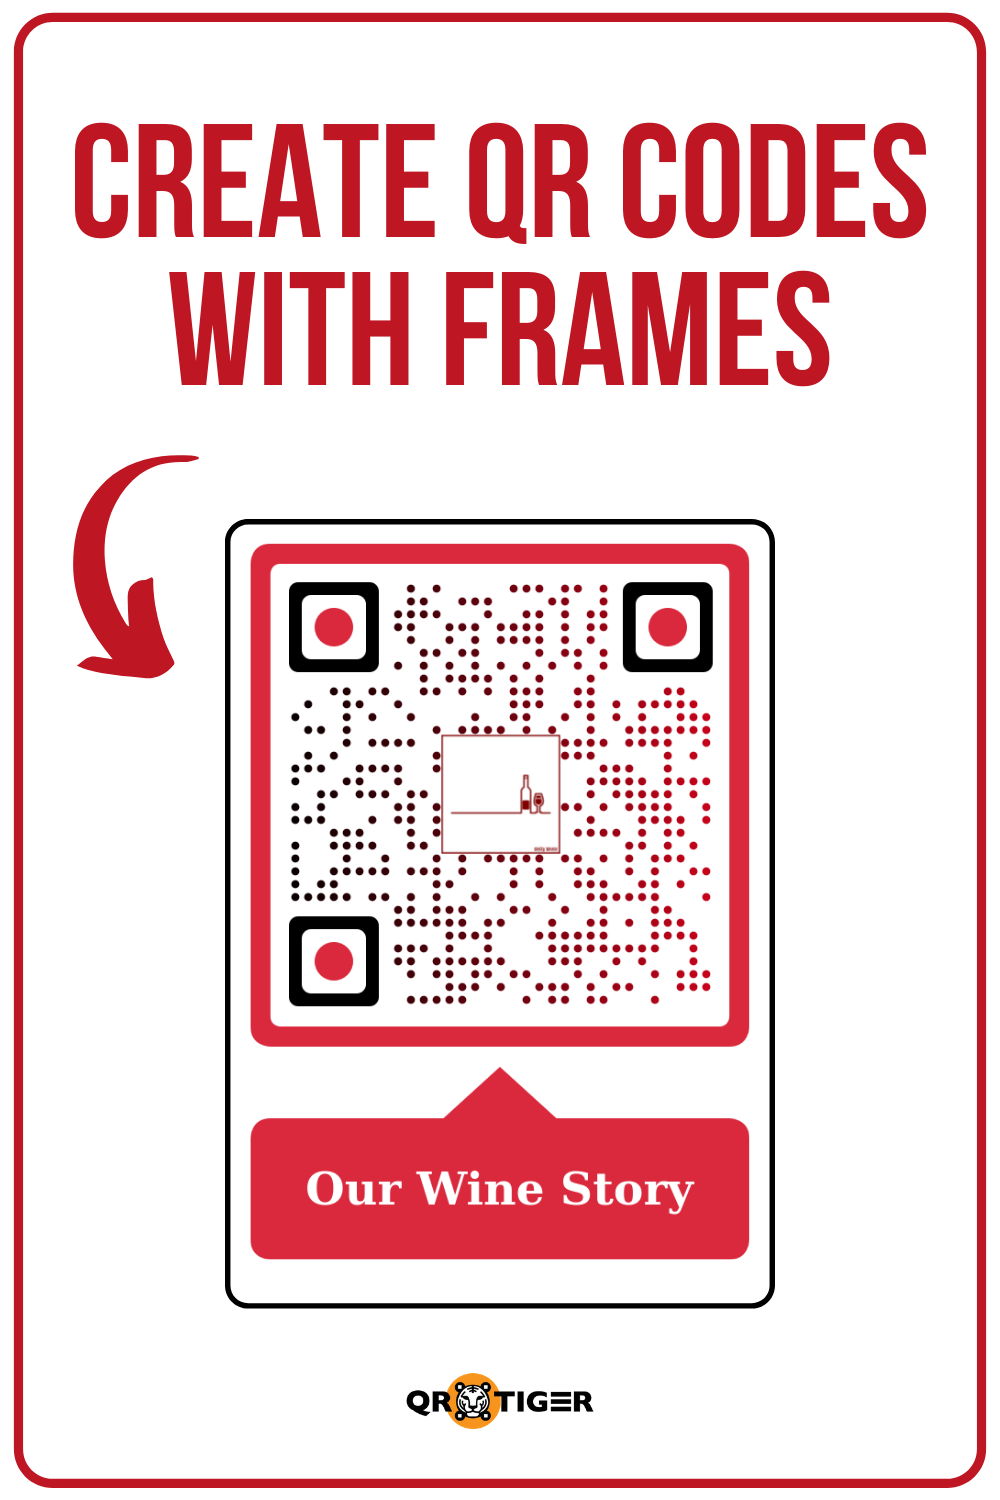 For Frames Eyes Here! FRAMES is now added to QRTiger! You